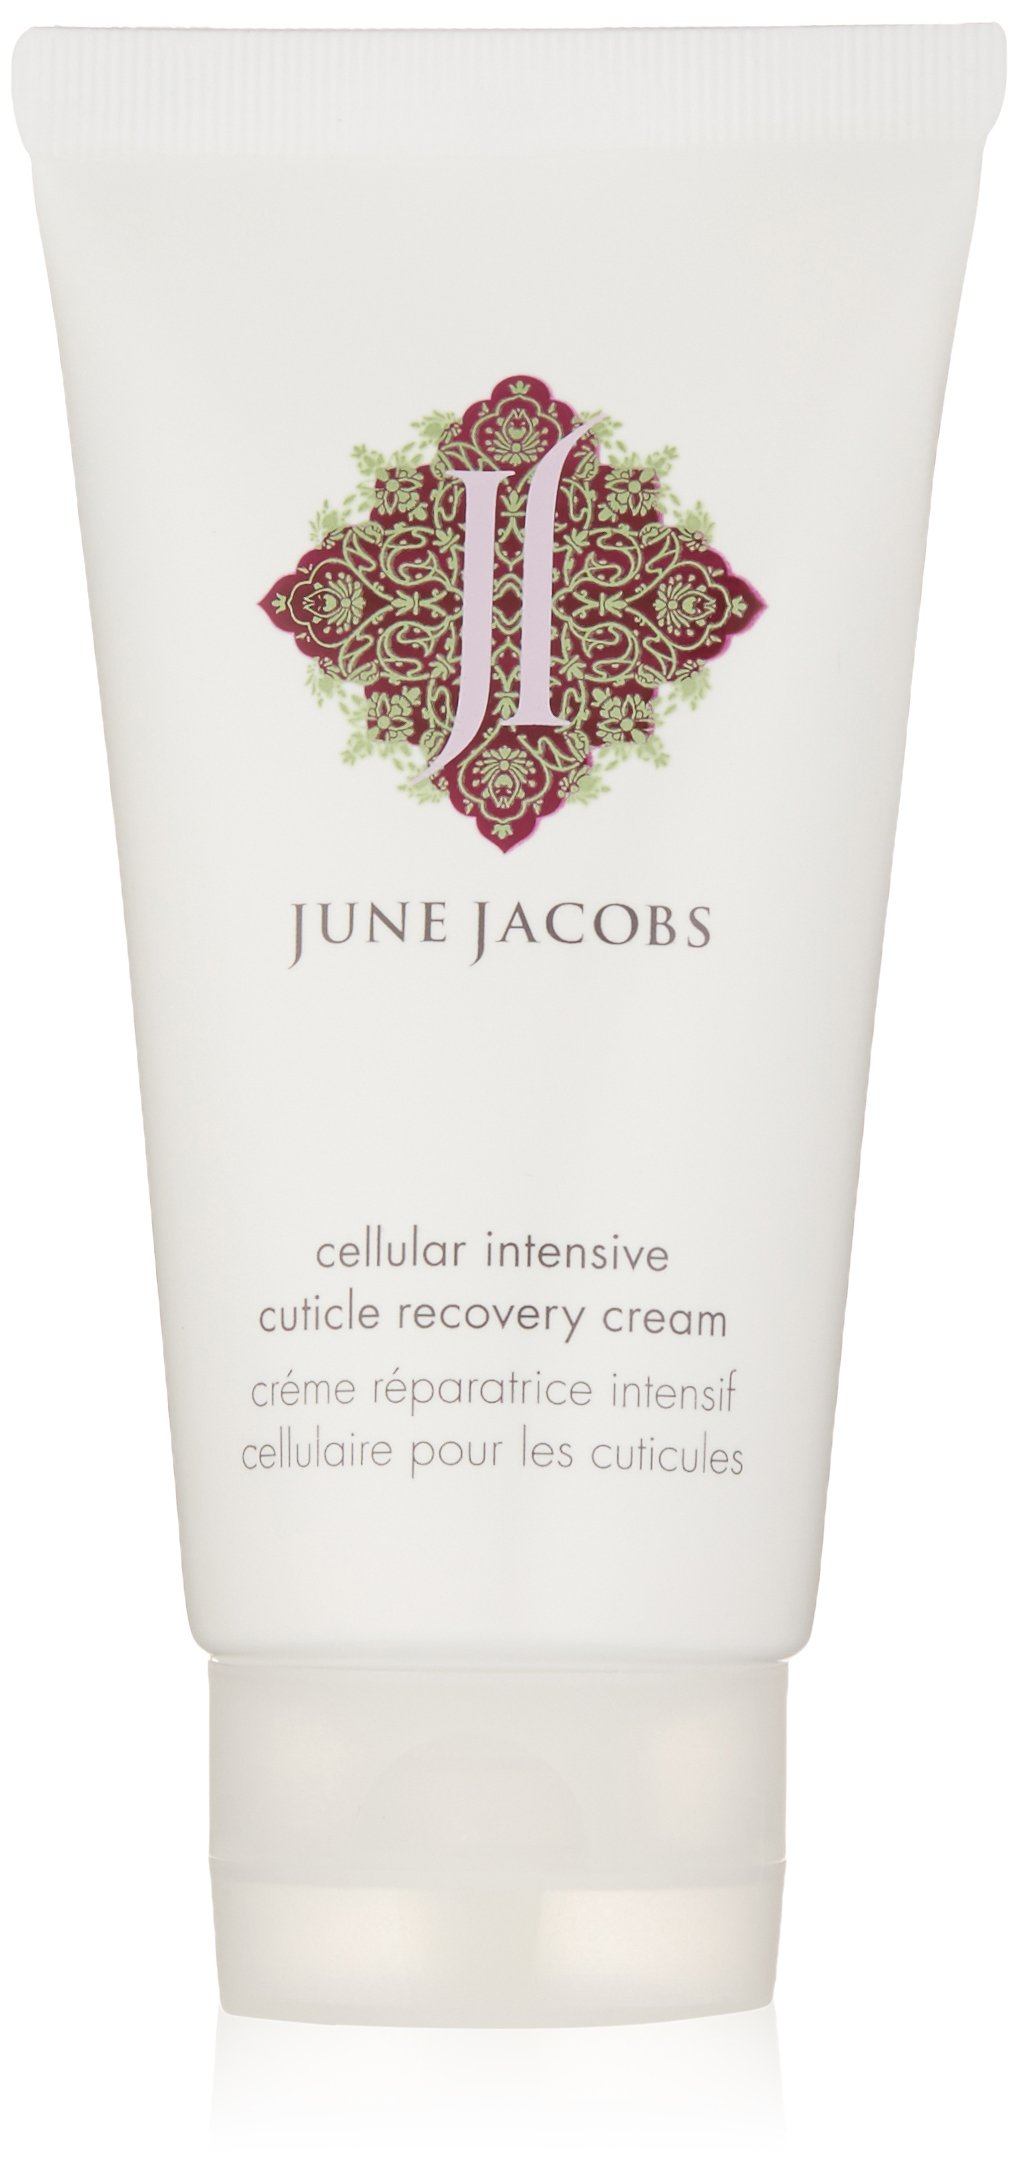 June Jacobs Cellular Intensive Cuticle Recovery Cream, 1.6 Fl Oz by June Jacobs